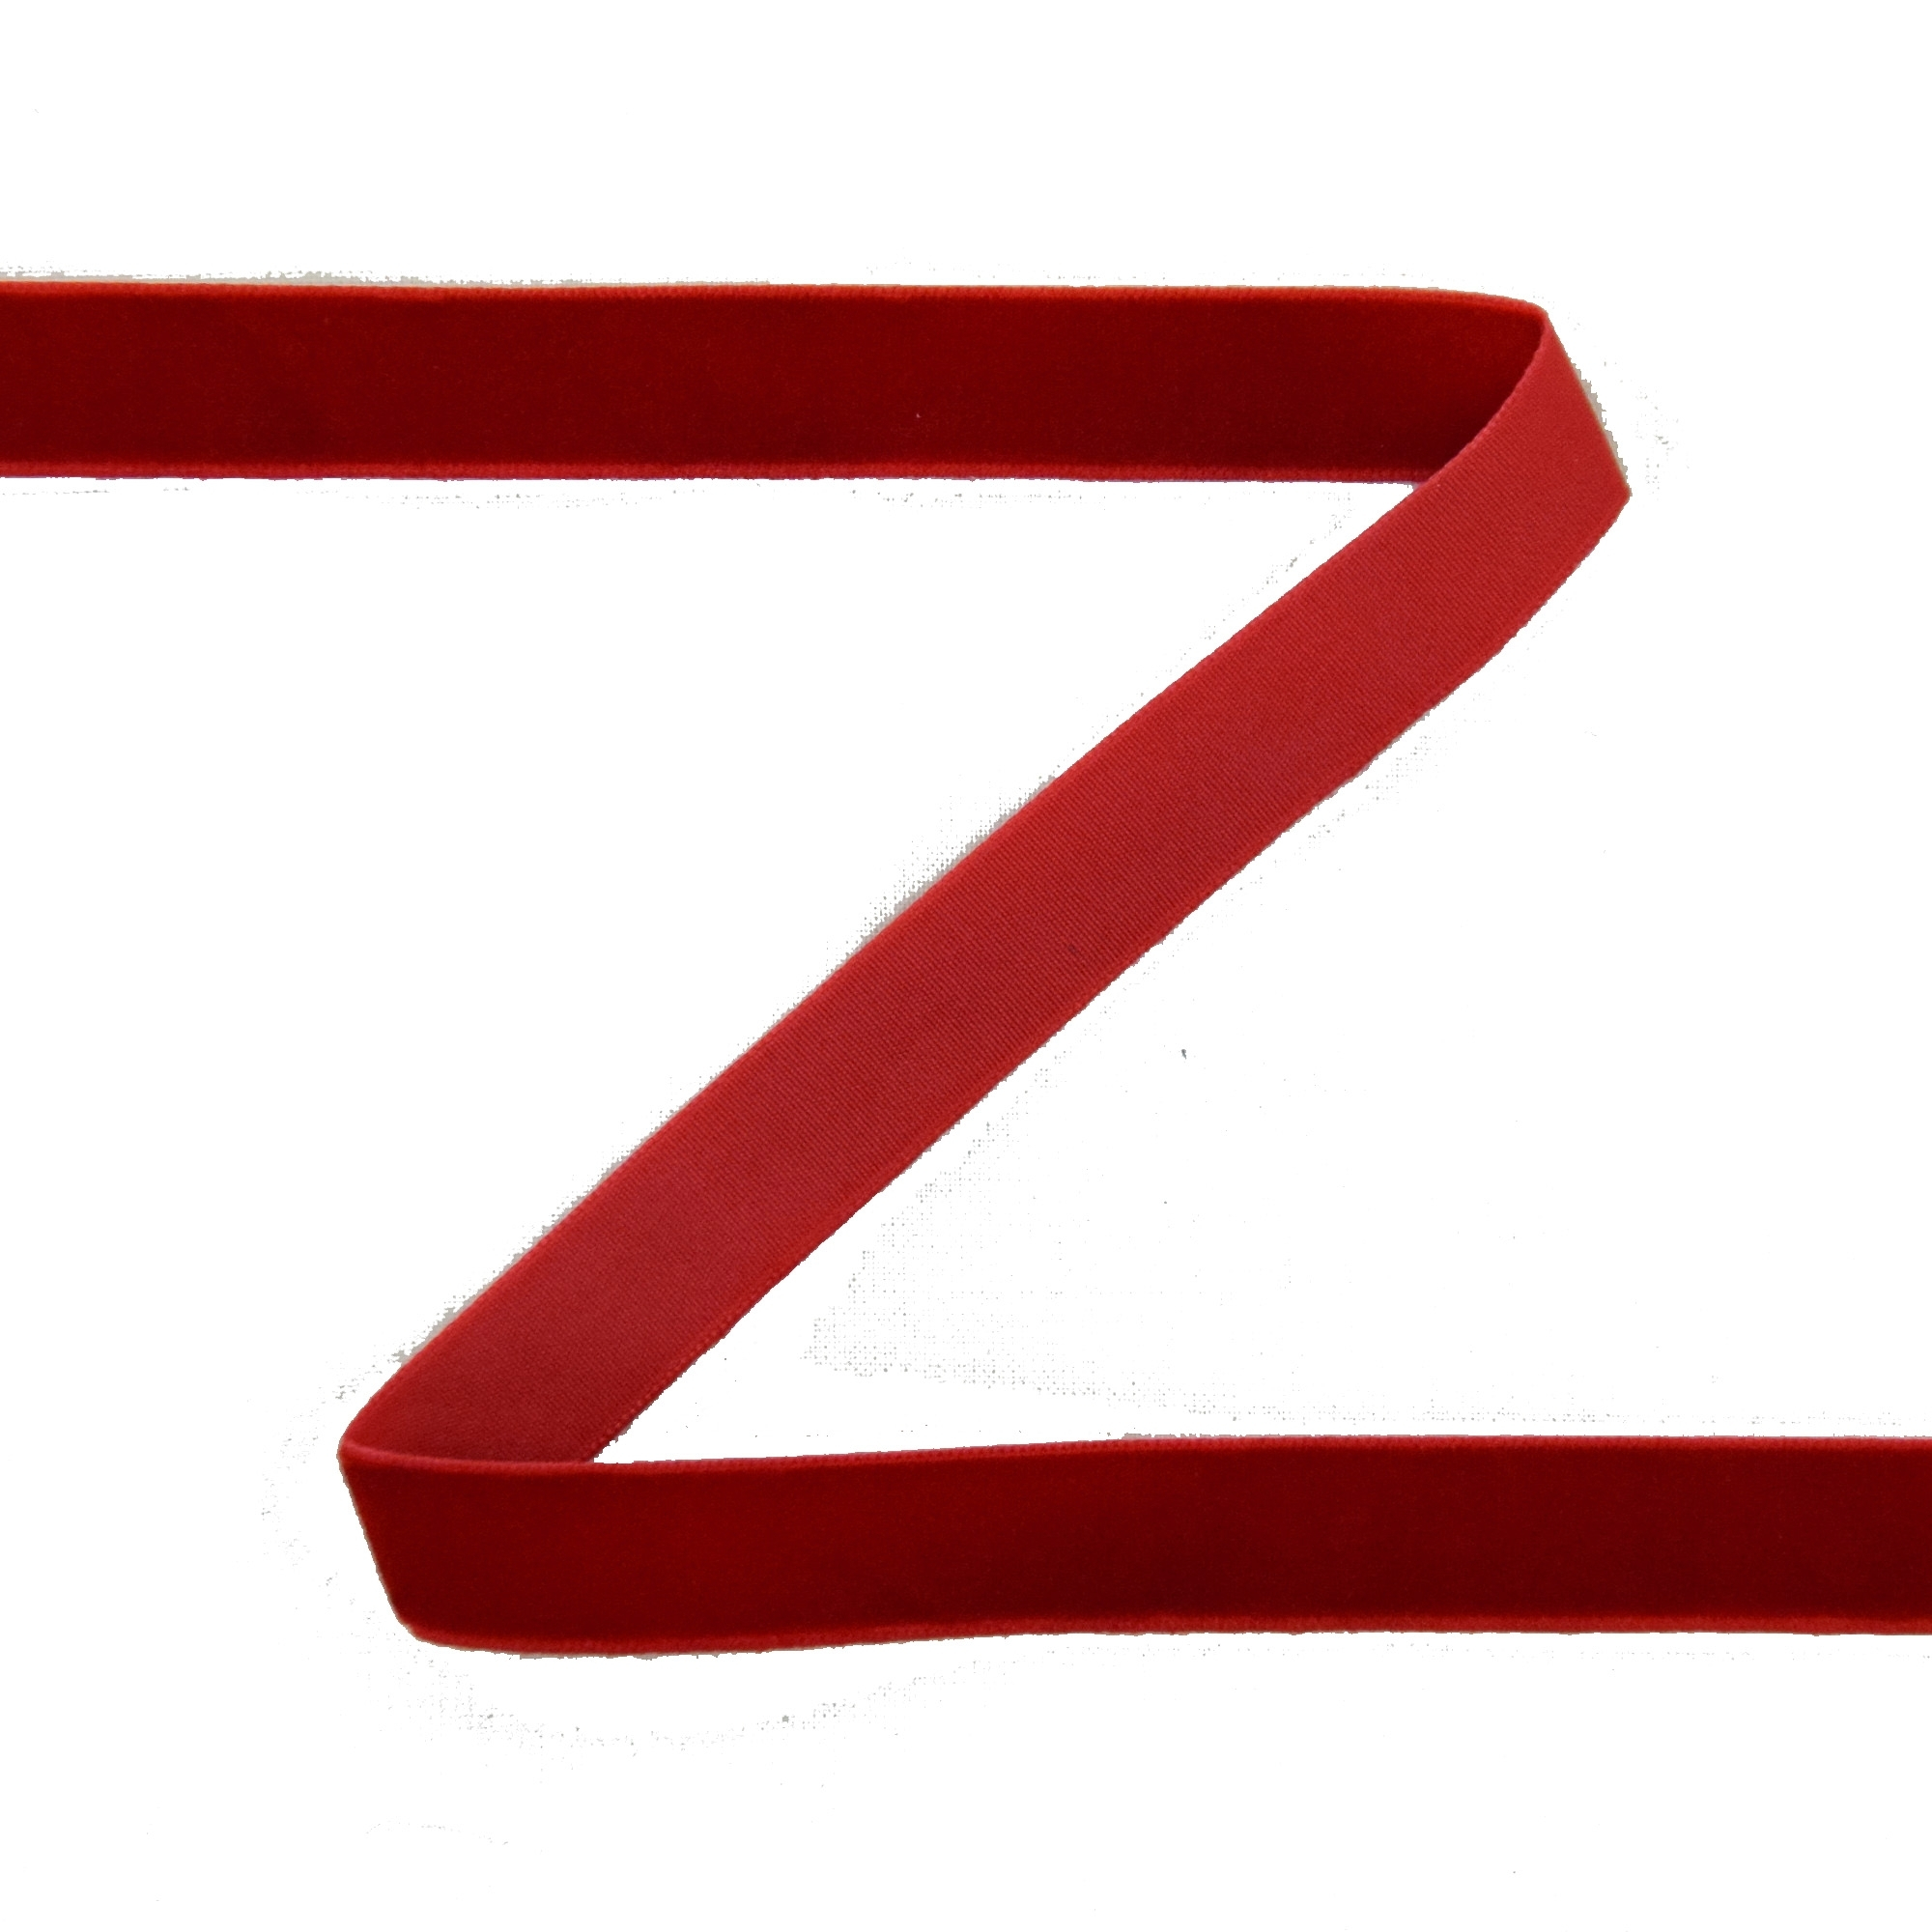 Samtband 15 mm, rot | 30259 | rot